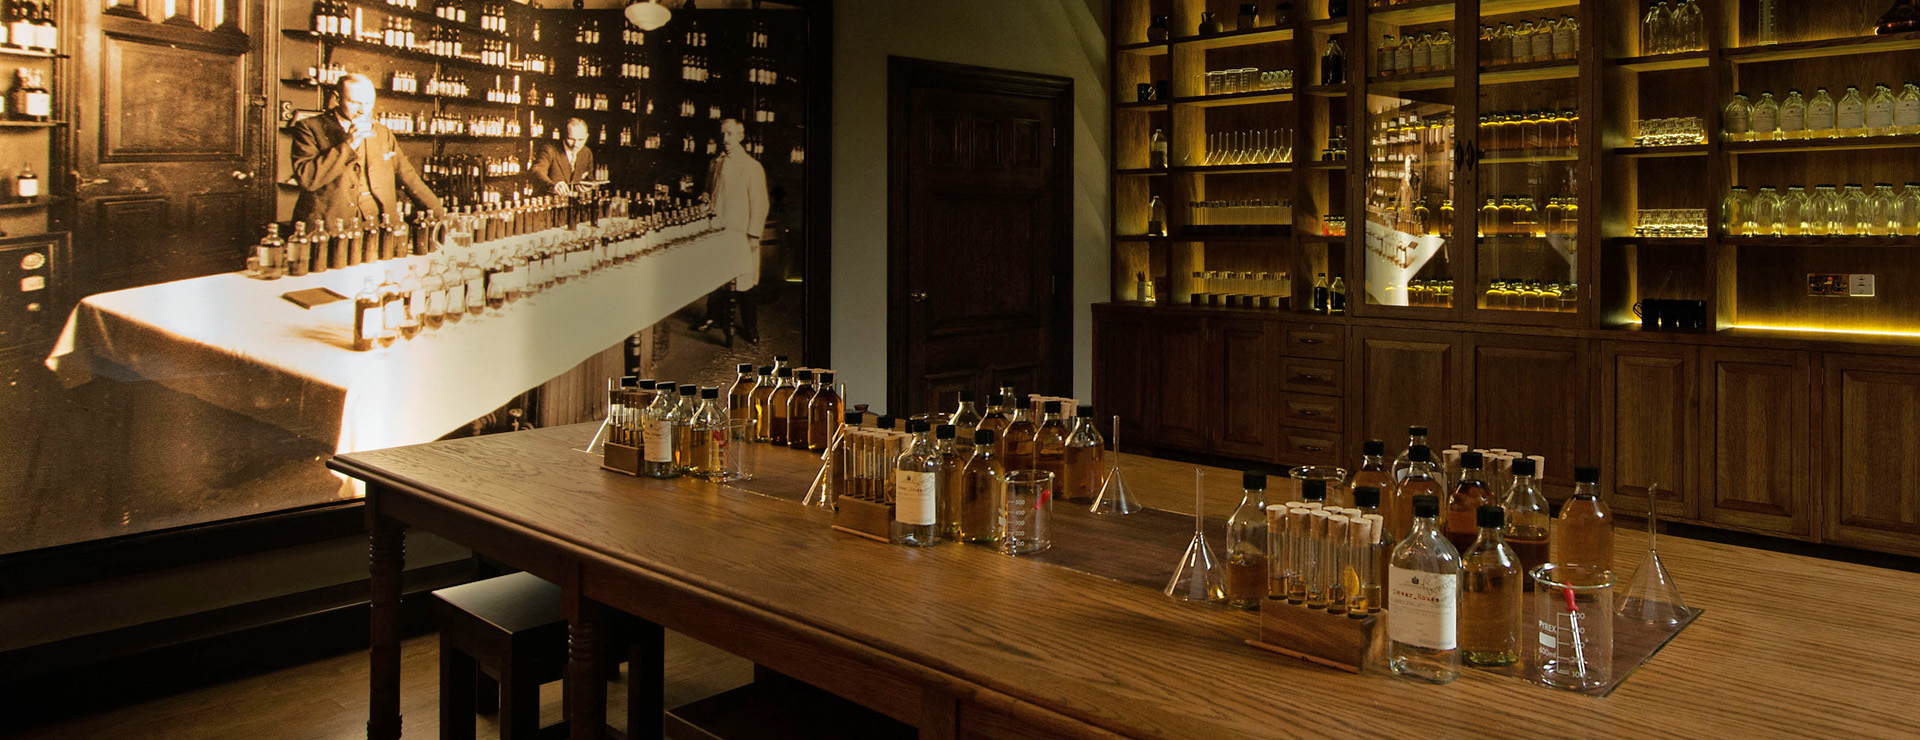 The Blending Room at Dewar's Aberfeldy Distillery - home to our whisky blending tour